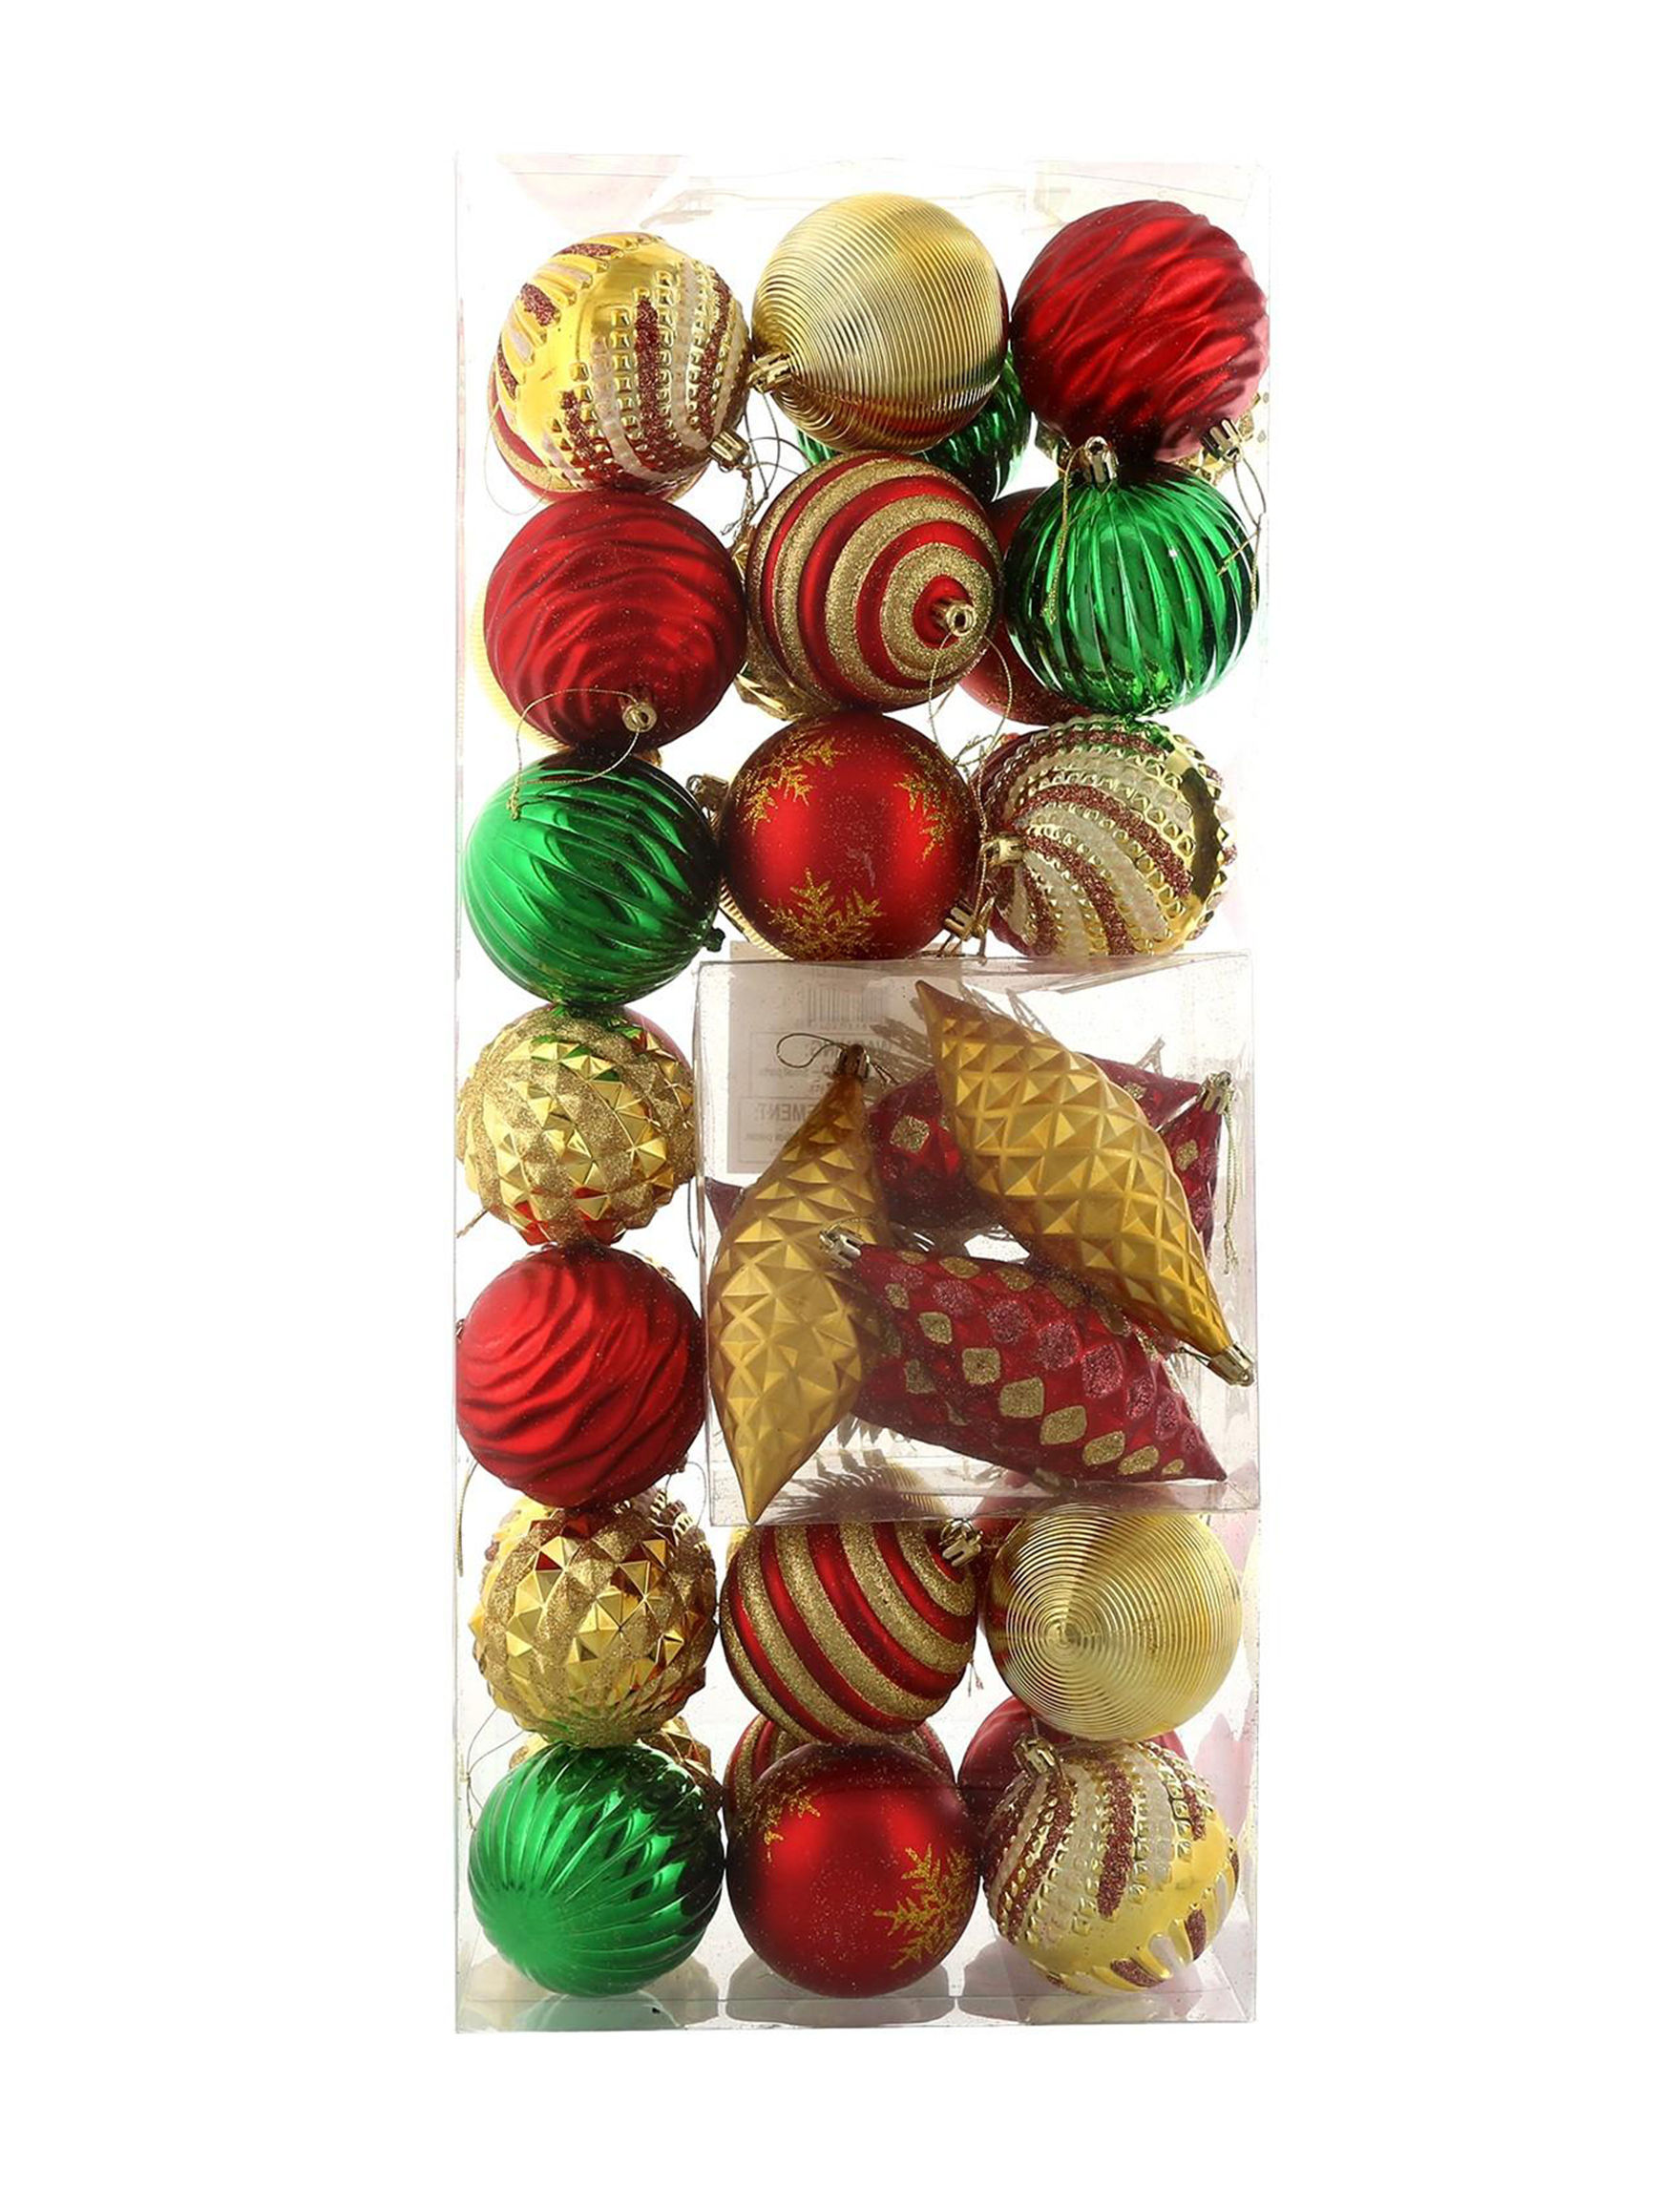 BuySeasons Red / Gold Decorative Objects Ornaments Holiday Decor